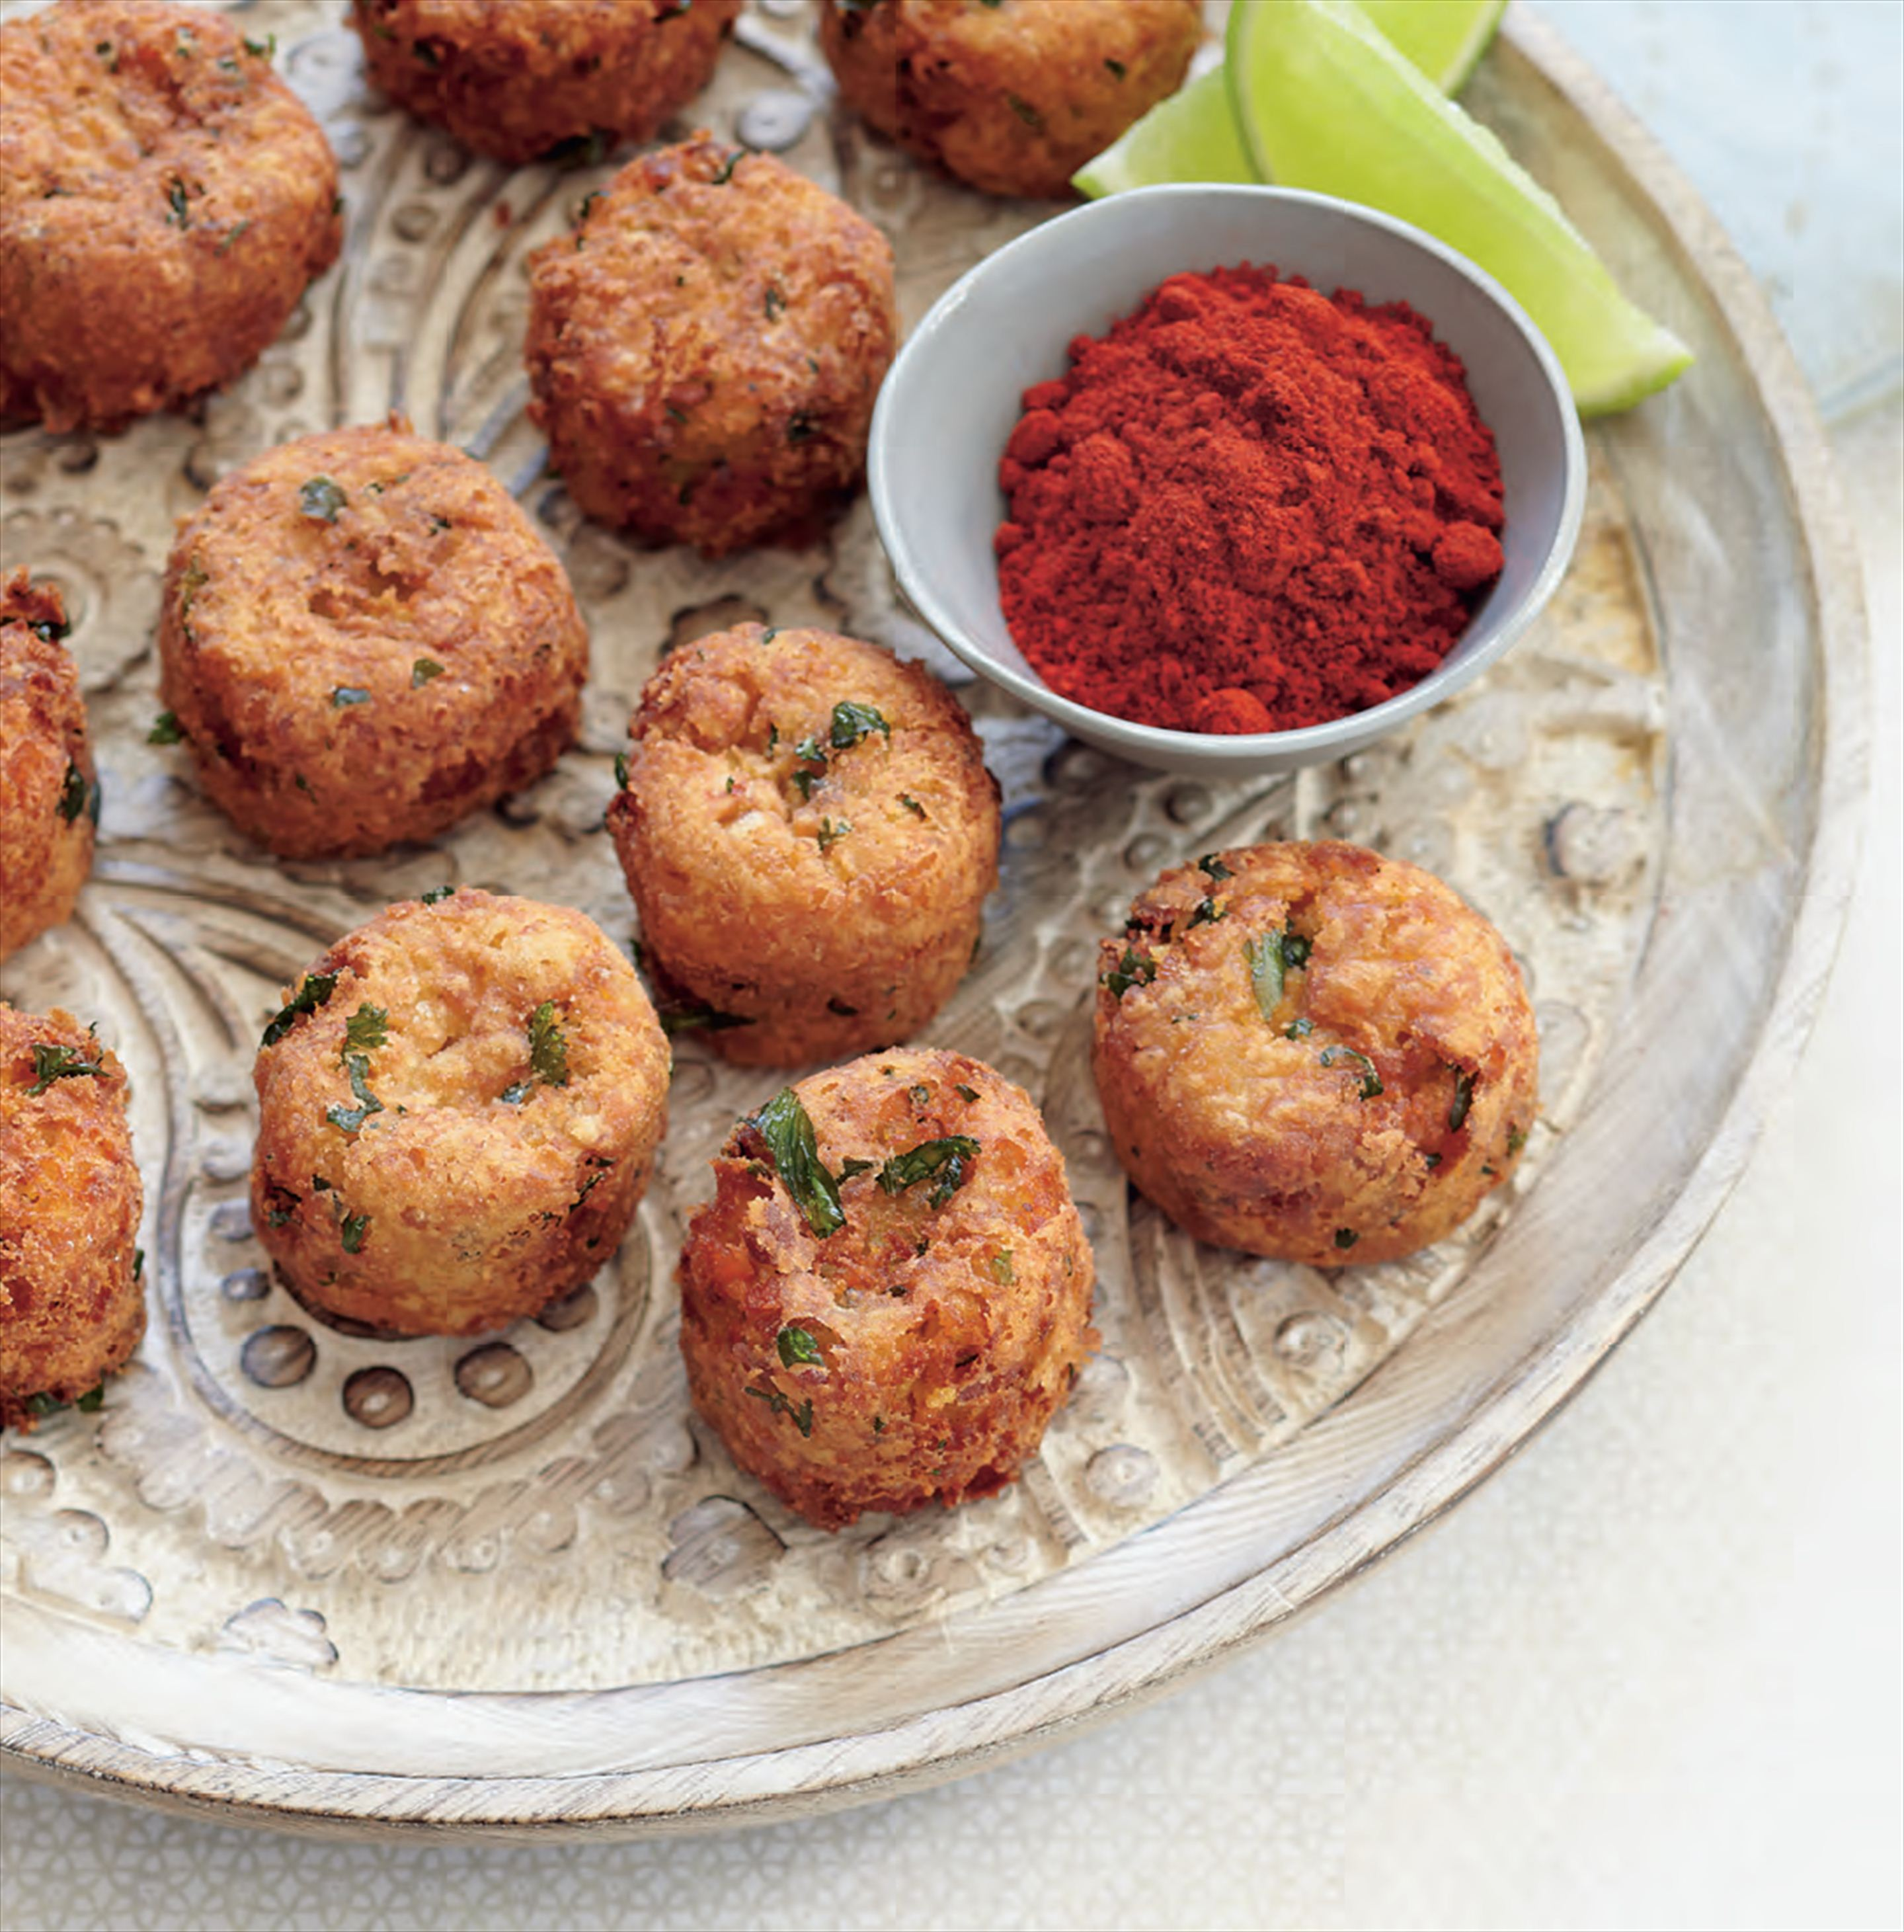 Lentil balls with lime and smoked paprika